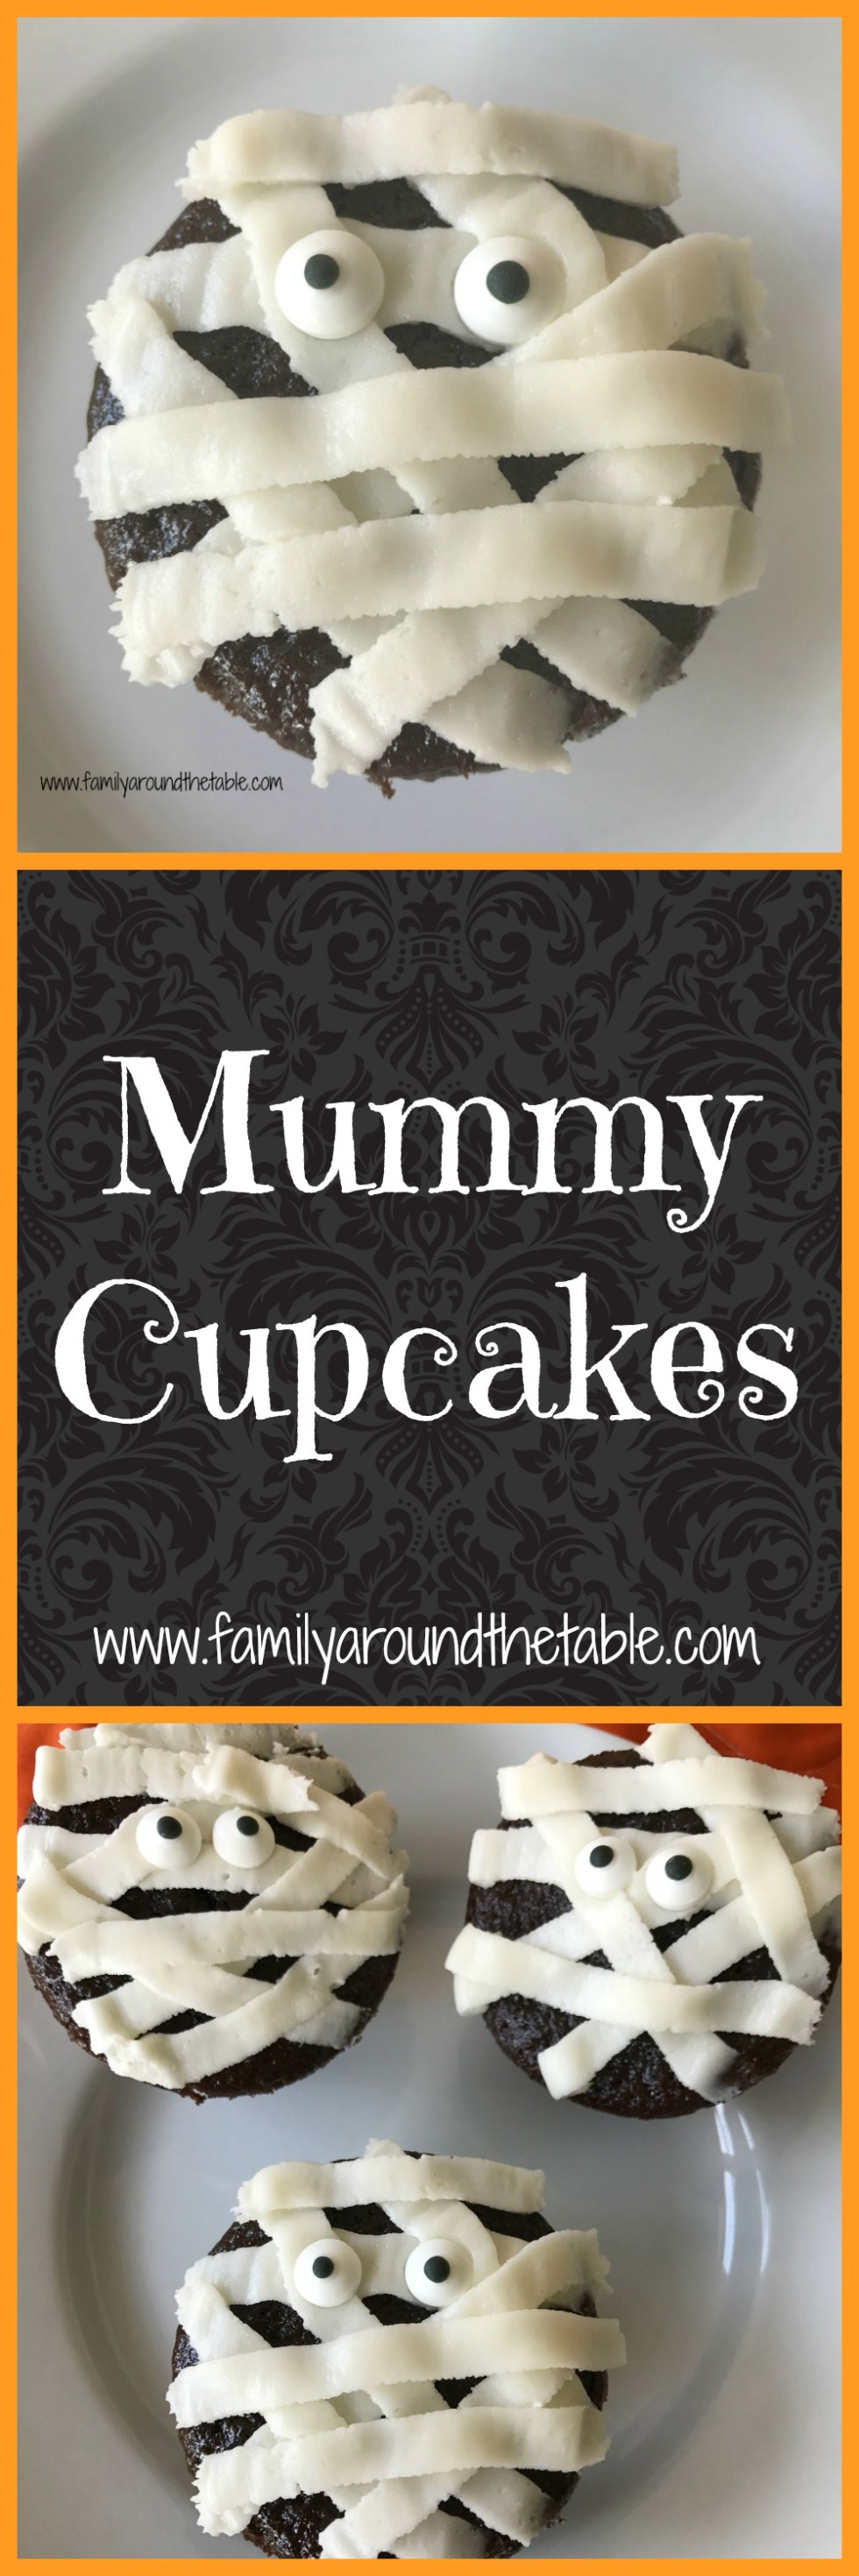 Mummy cupcakes are an easy treat for a Halloween party.